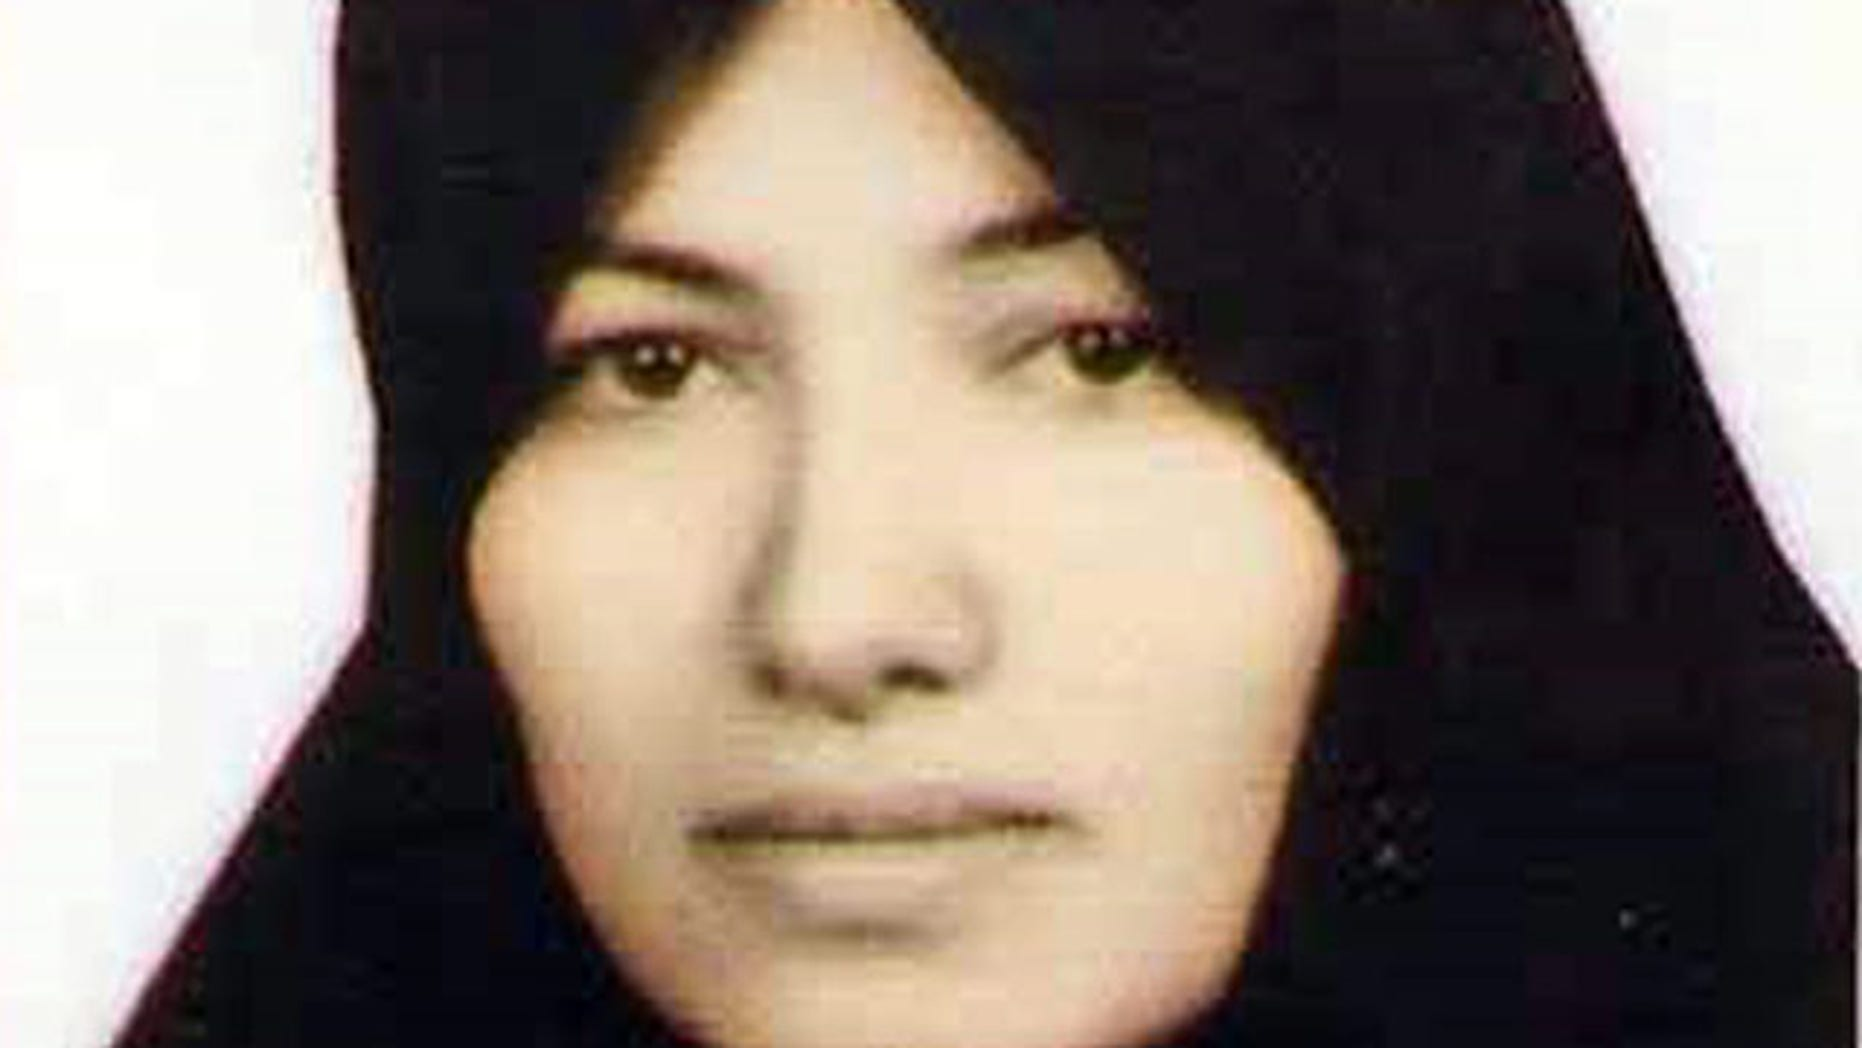 Sakineh Mohammadi Ashtiani, an Iranian woman sentenced to death by stoning for adultery, may be spared from execution.